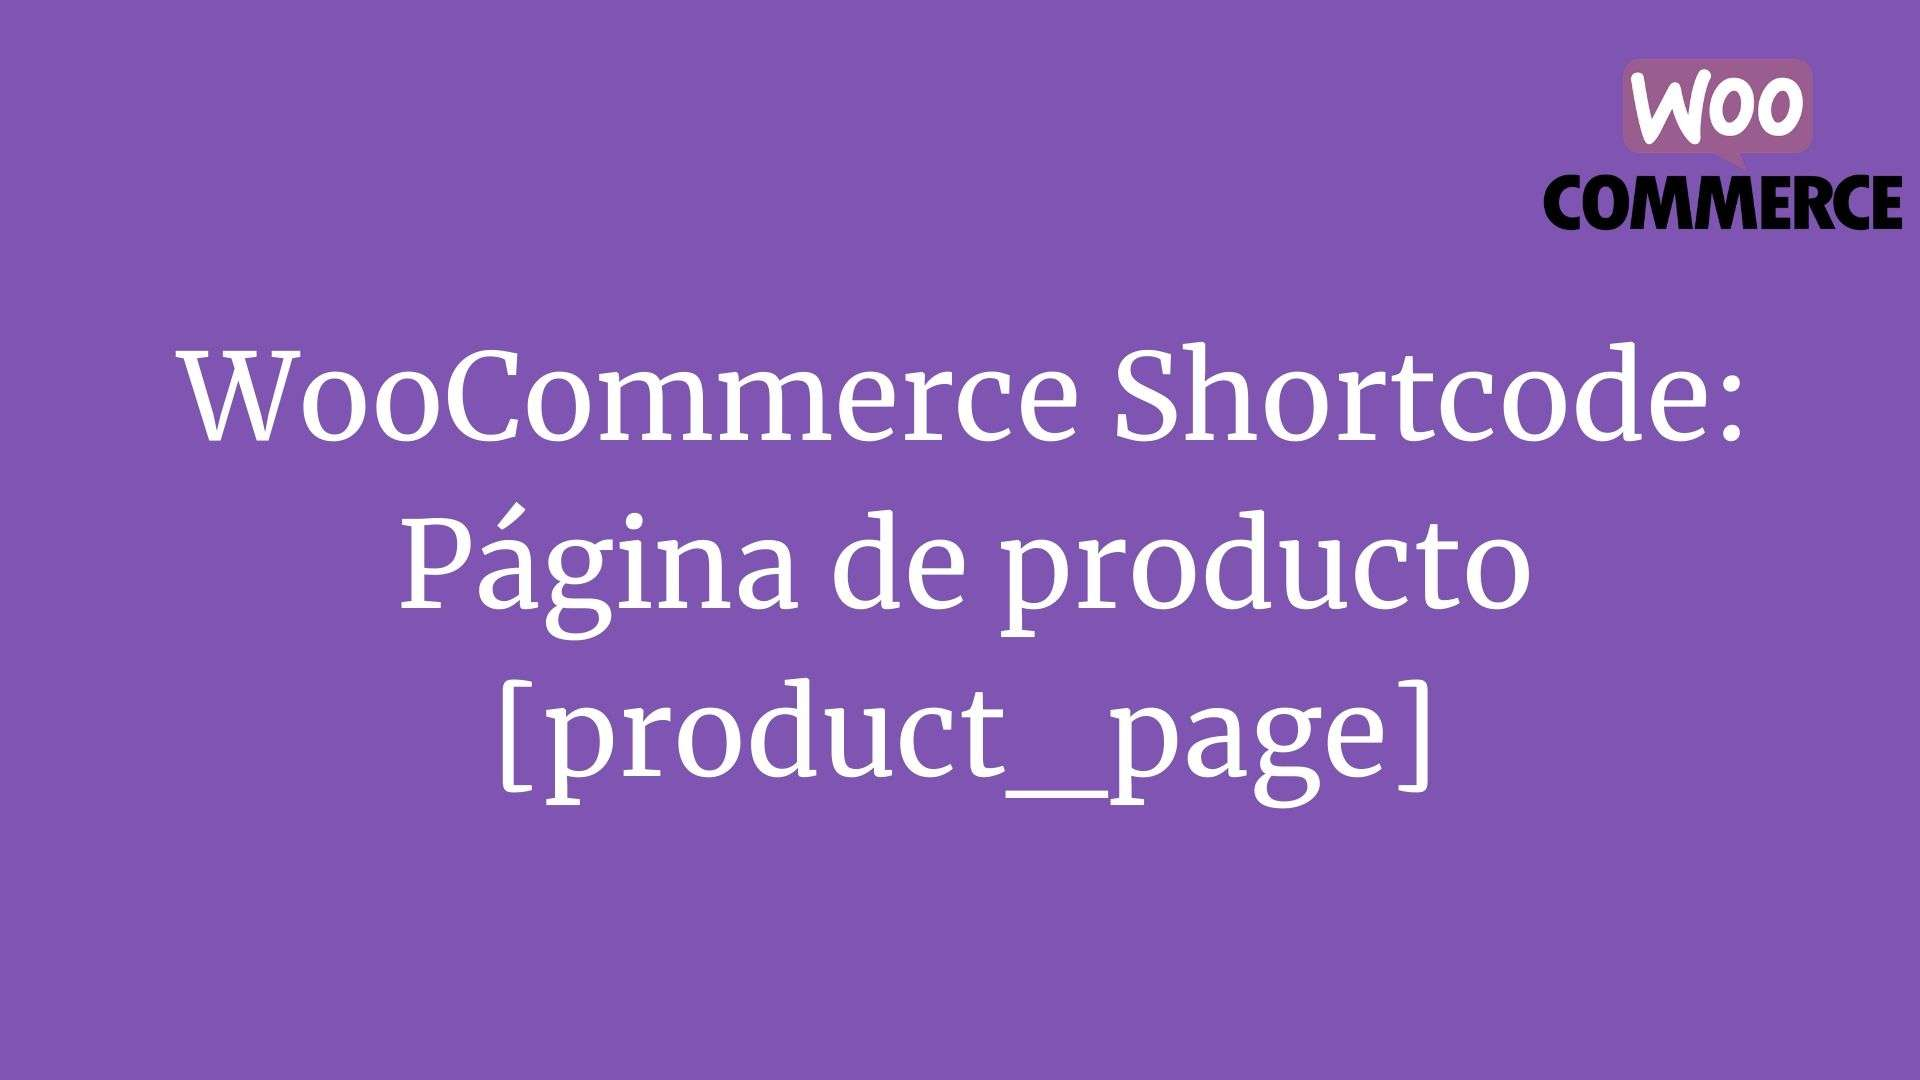 WooCommerce Shortcode: Página de producto [product_page]